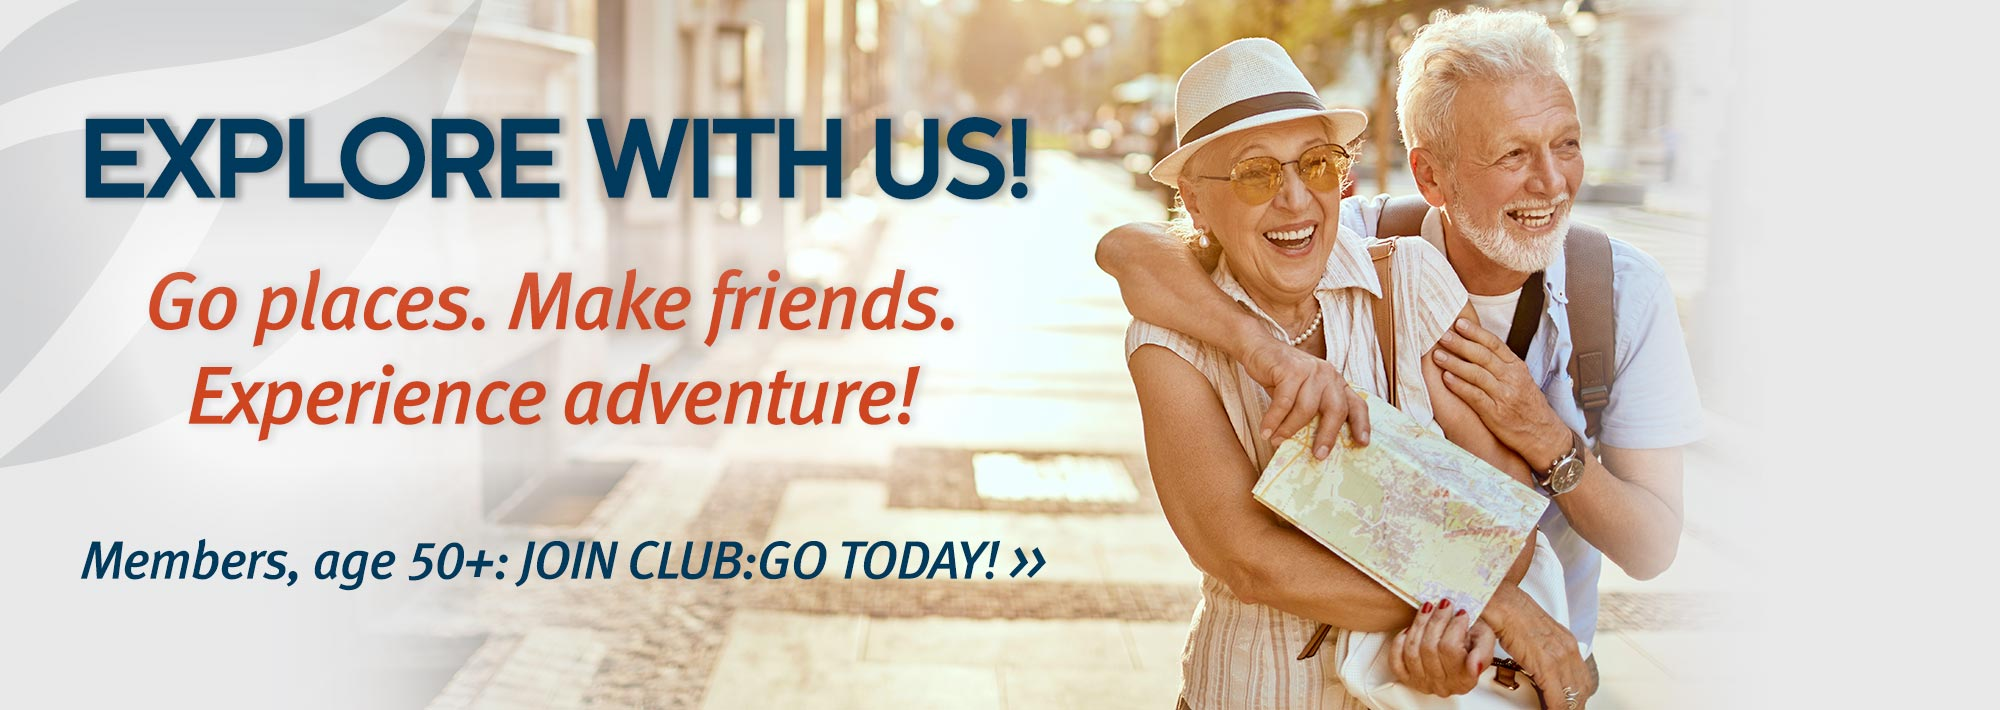 Explore with us! Go places. make friends. Experience adventure. Members, age 50+: Jon Club:go today!